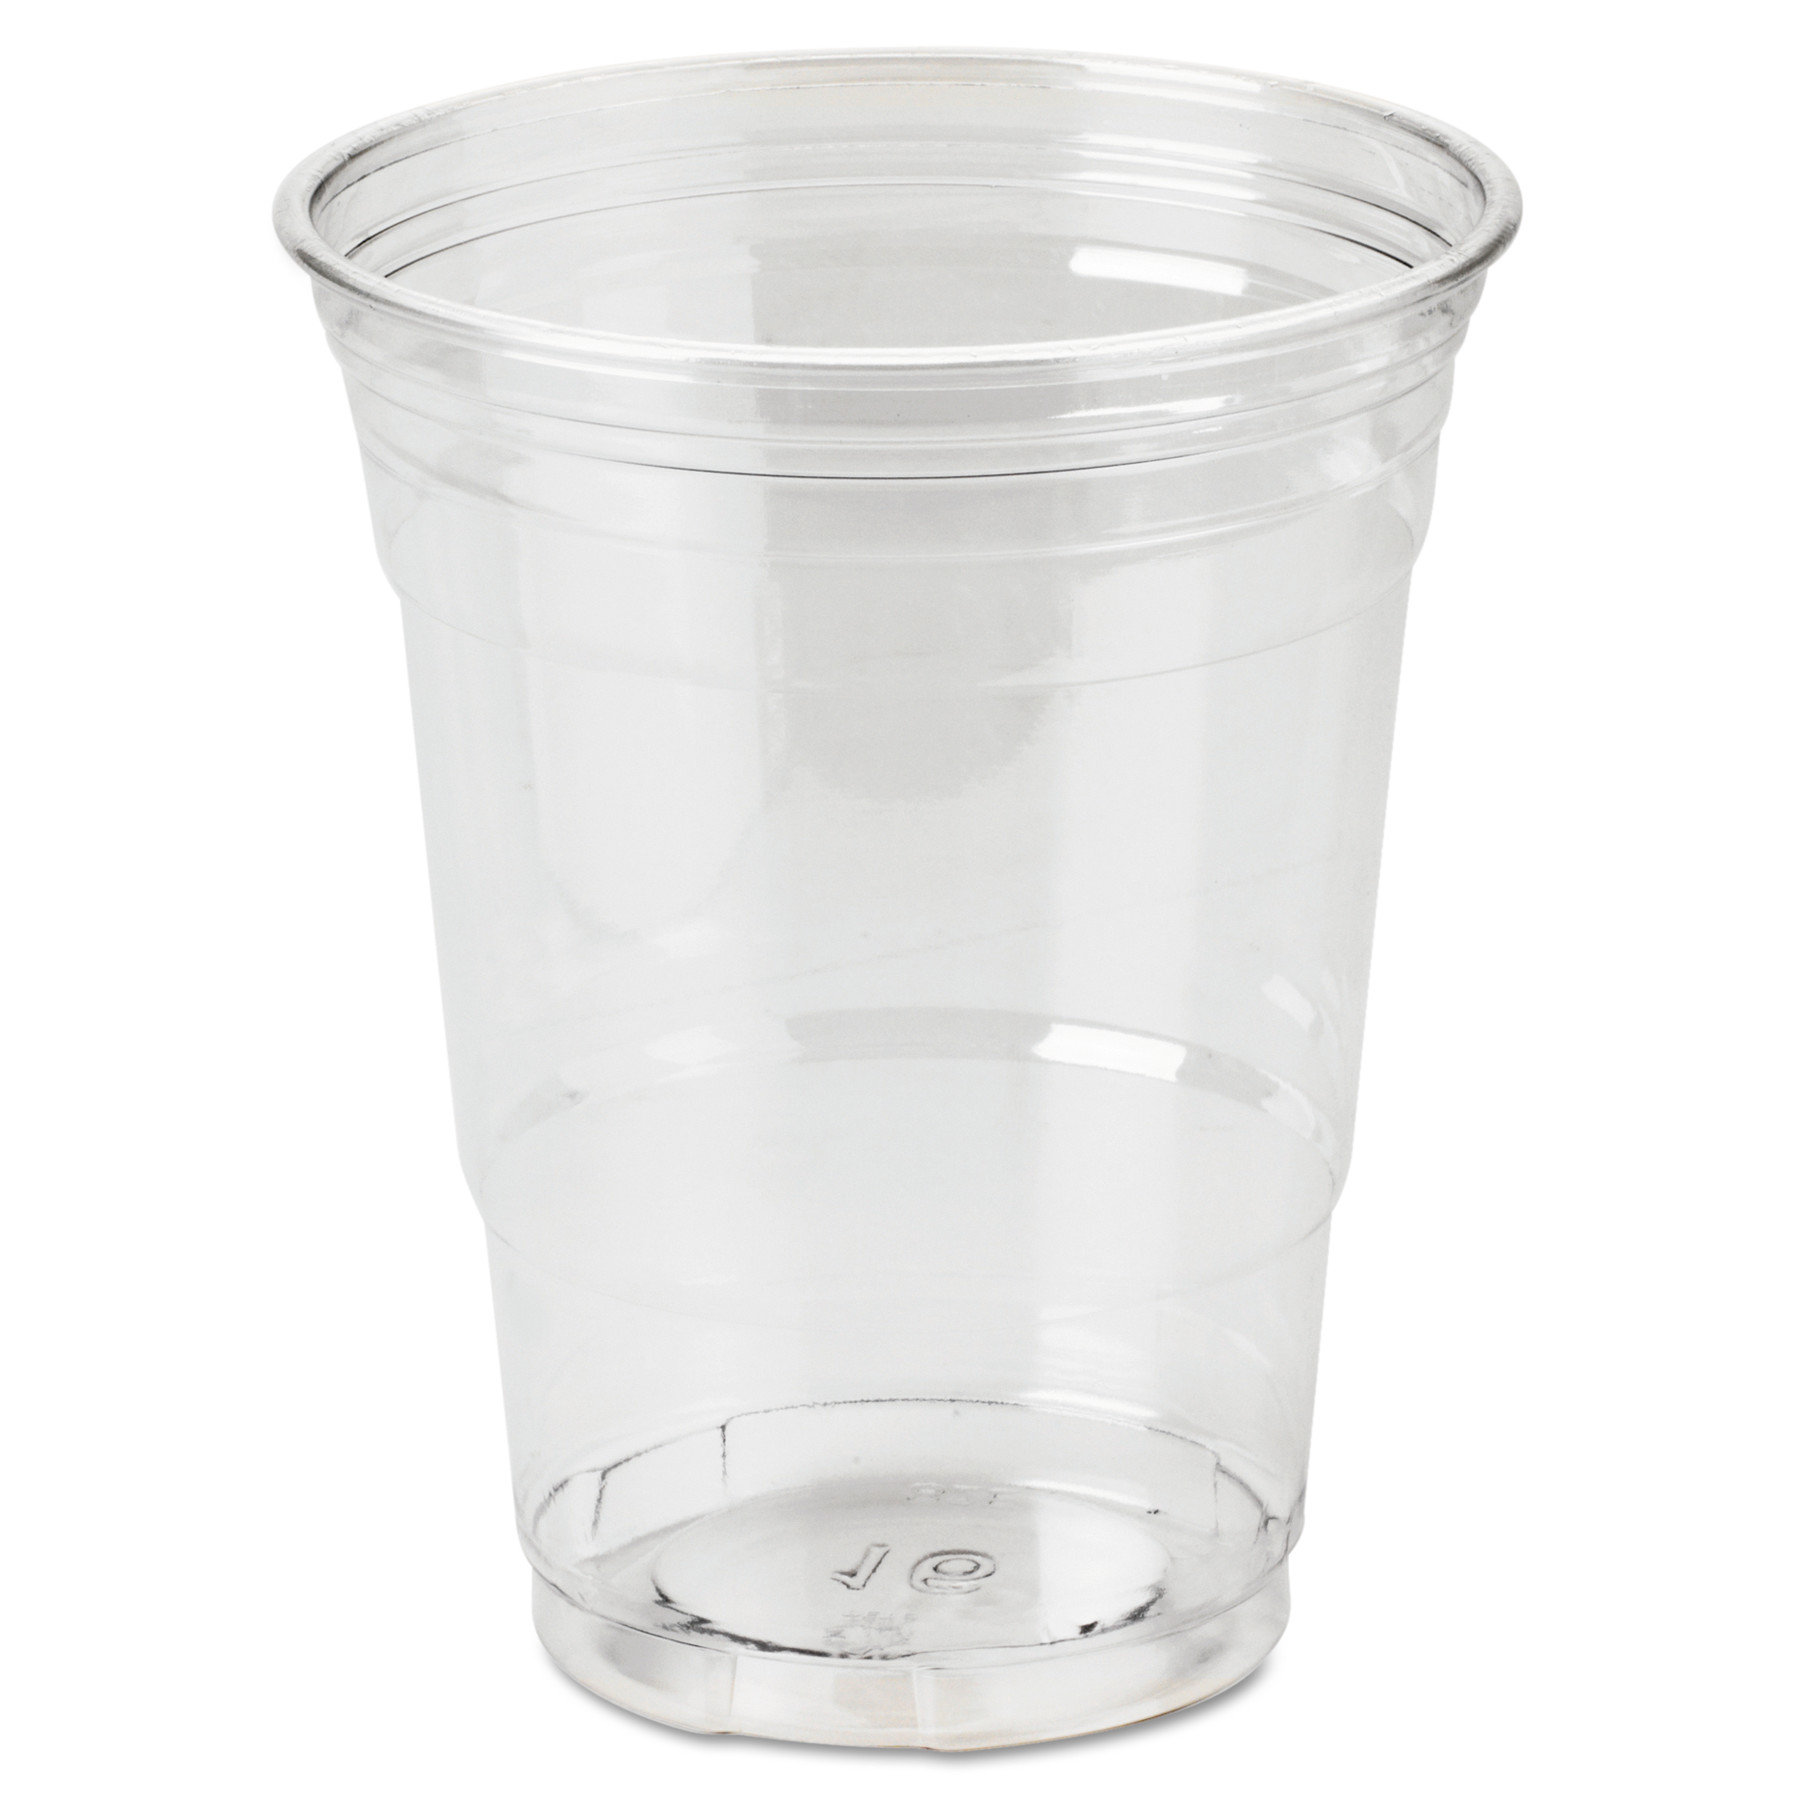 Dixie Wise Size 16 Ounce Plastic PETE Cups, 500ct